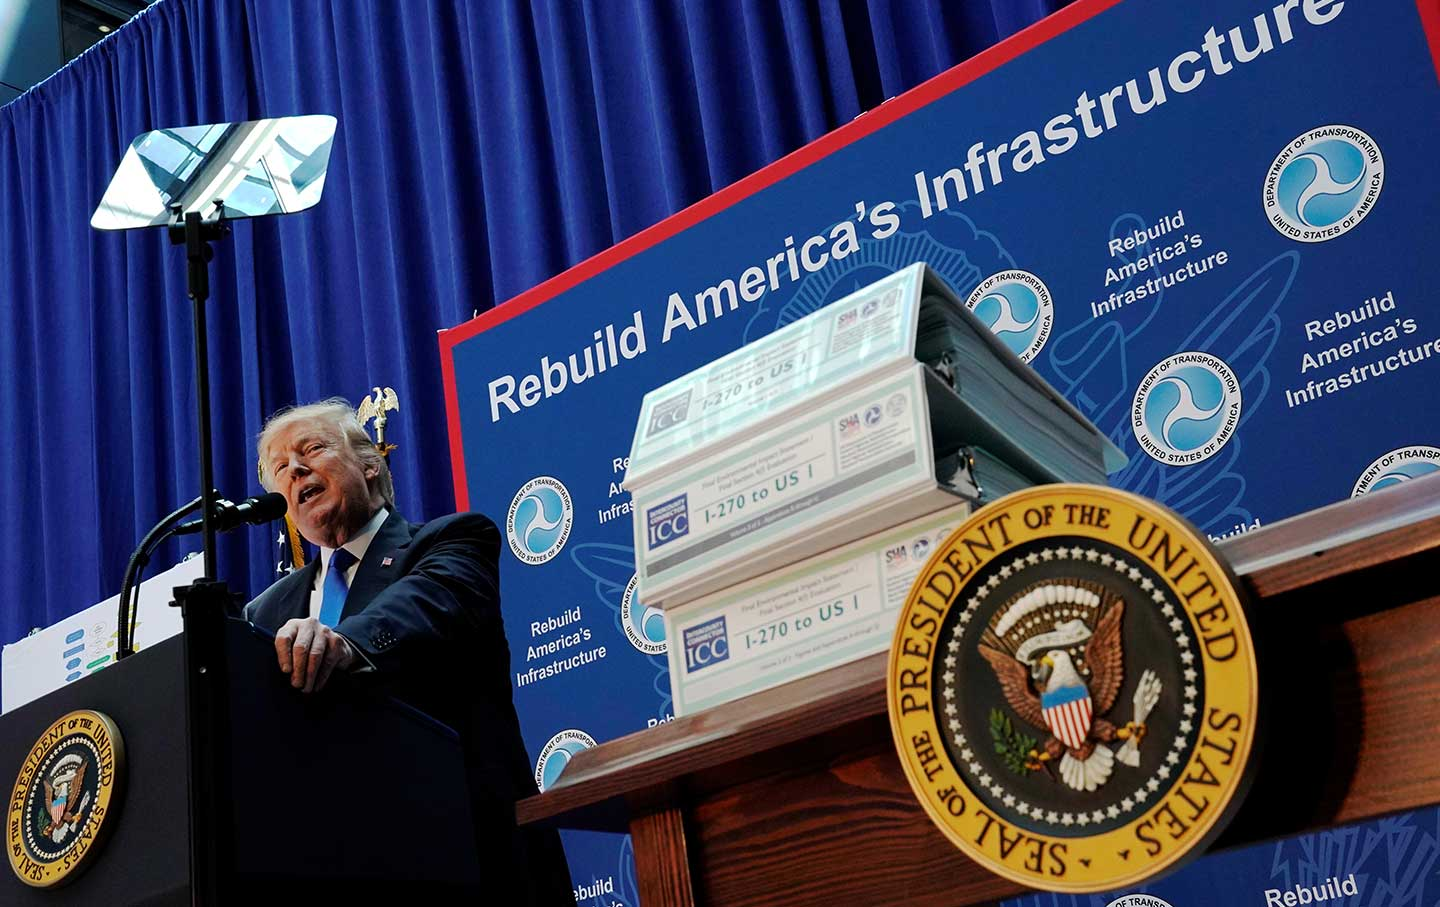 Trump Infrastructure Plan